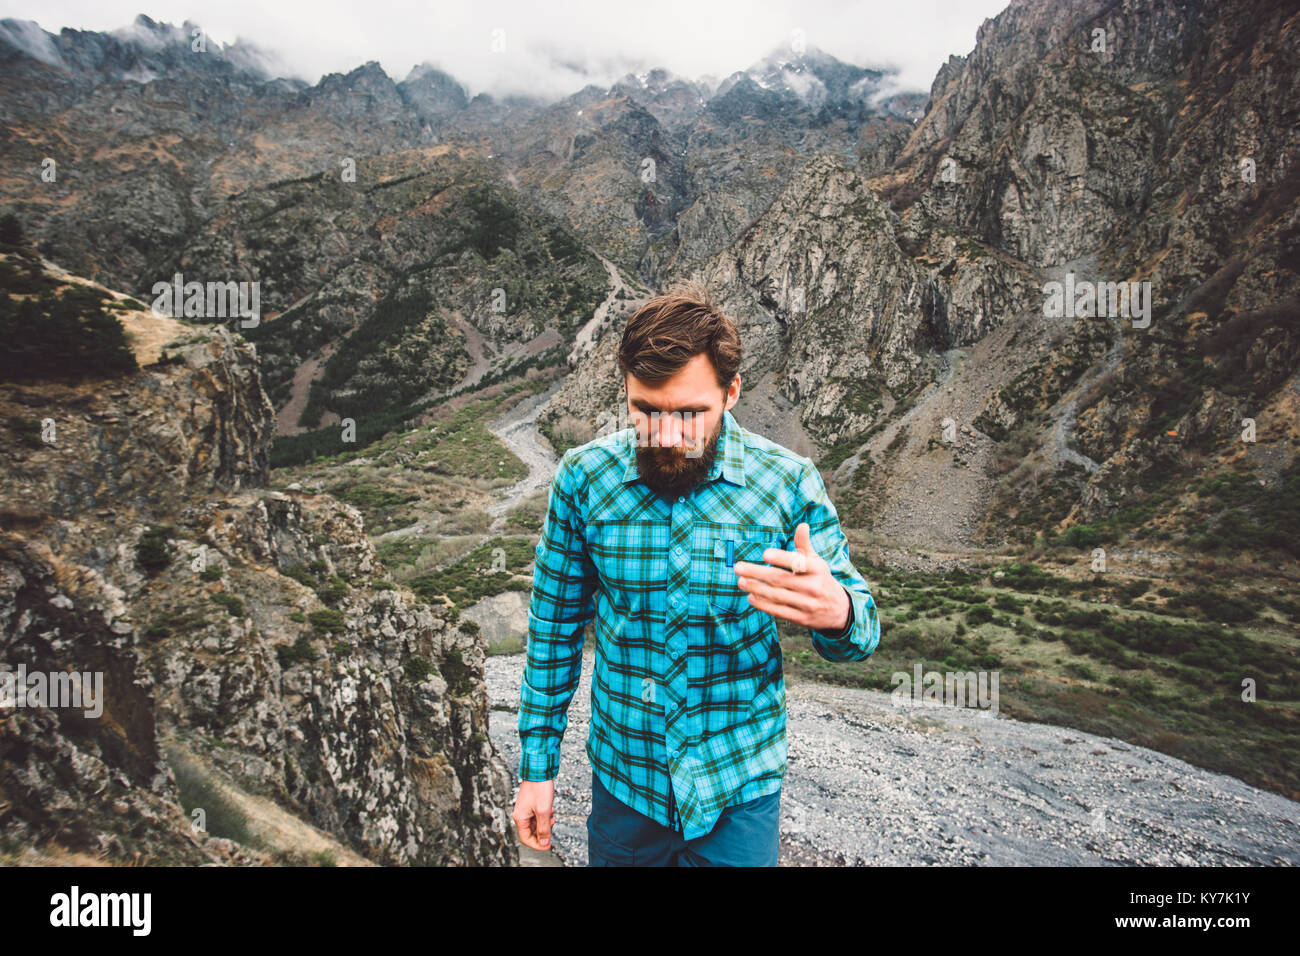 Bearded Man walking in mountains Travel Adventure lifestyle concept active weekend summer vacations - Stock Image